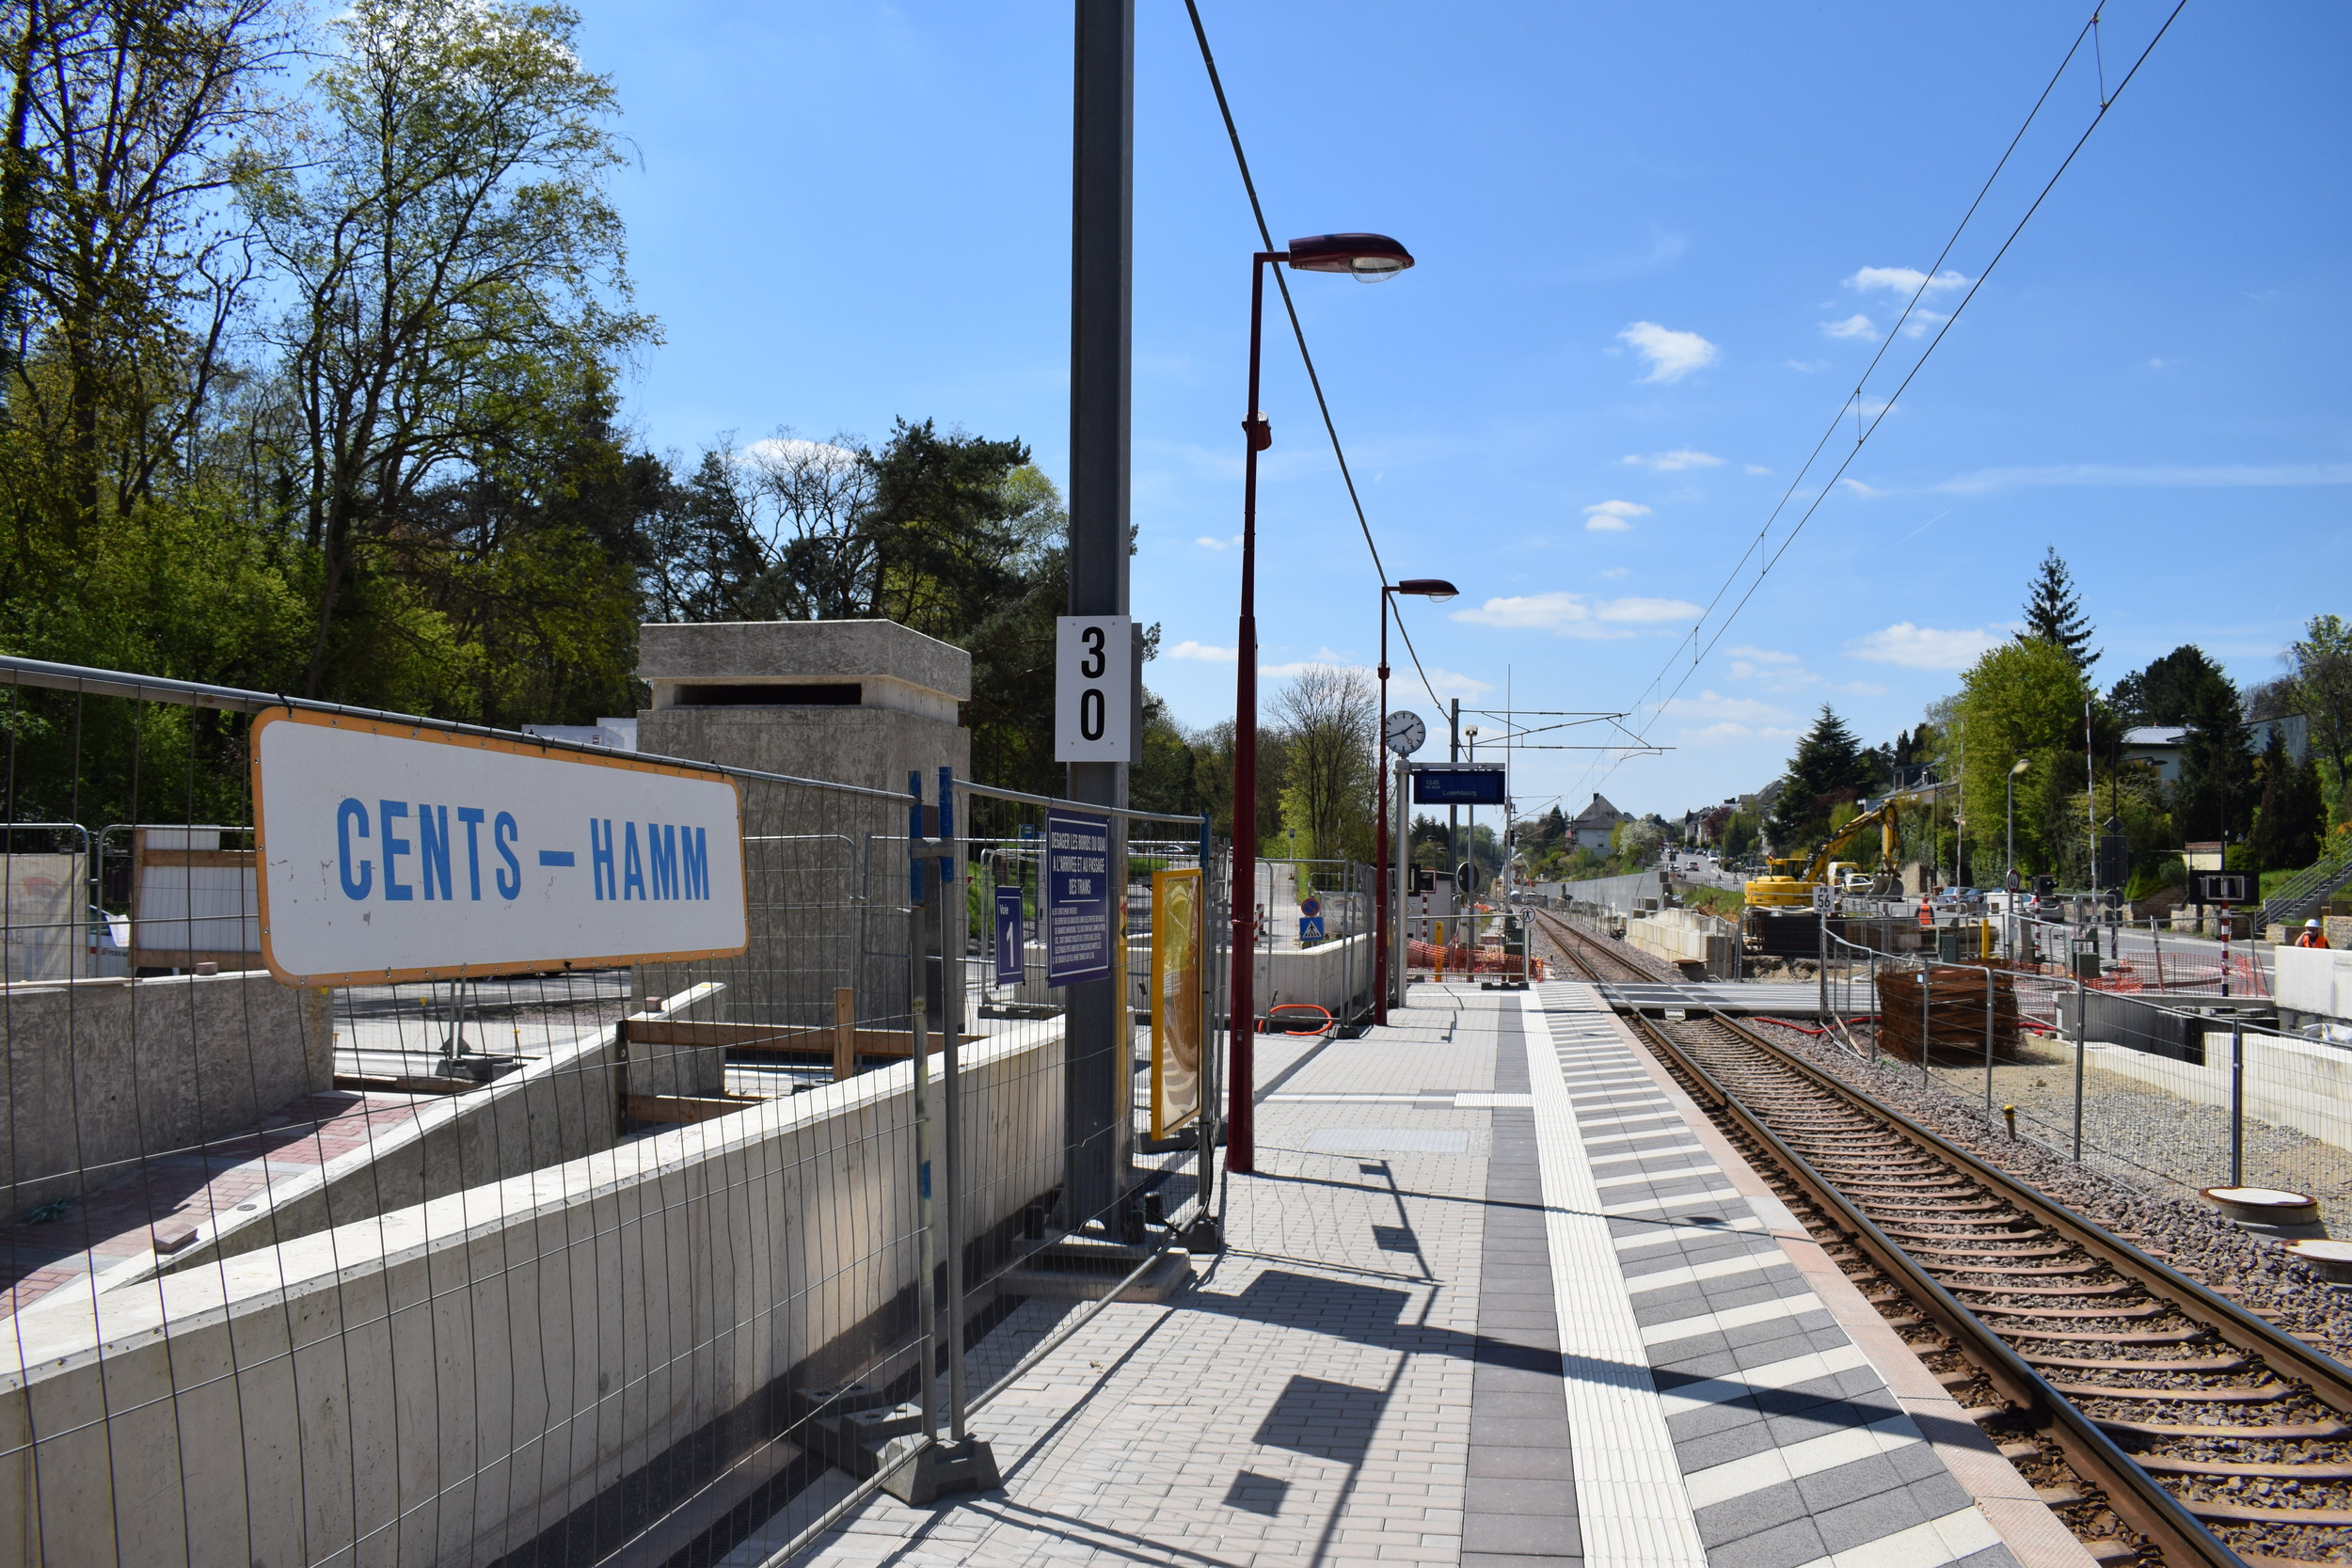 Cents-Hamm railway station, just one stop up from Luxembourg City's central station.